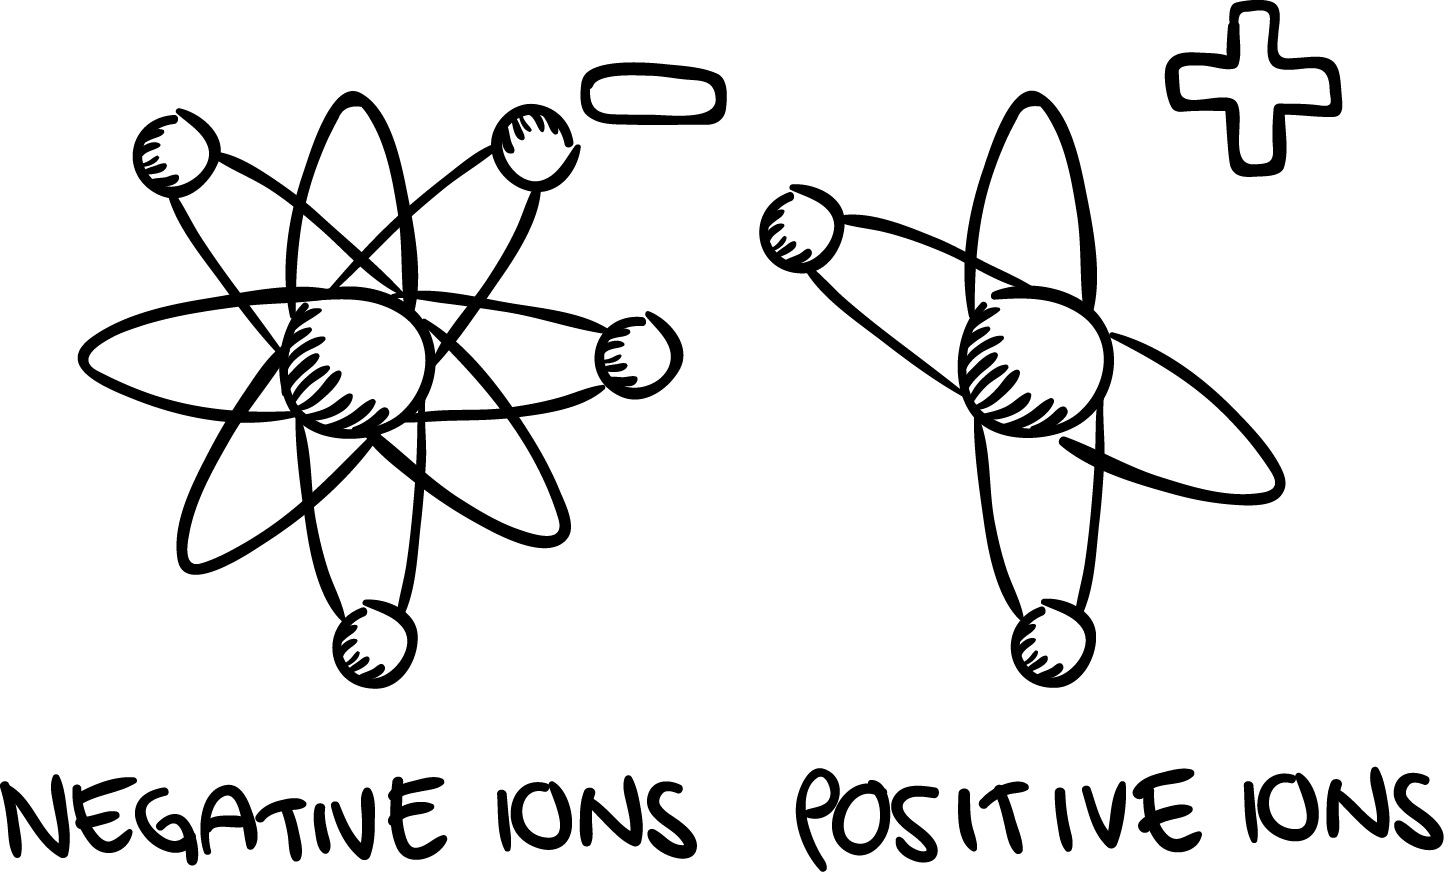 small resolution of negative ions have more electrons than the neutral element while positive ions have fewer electrons